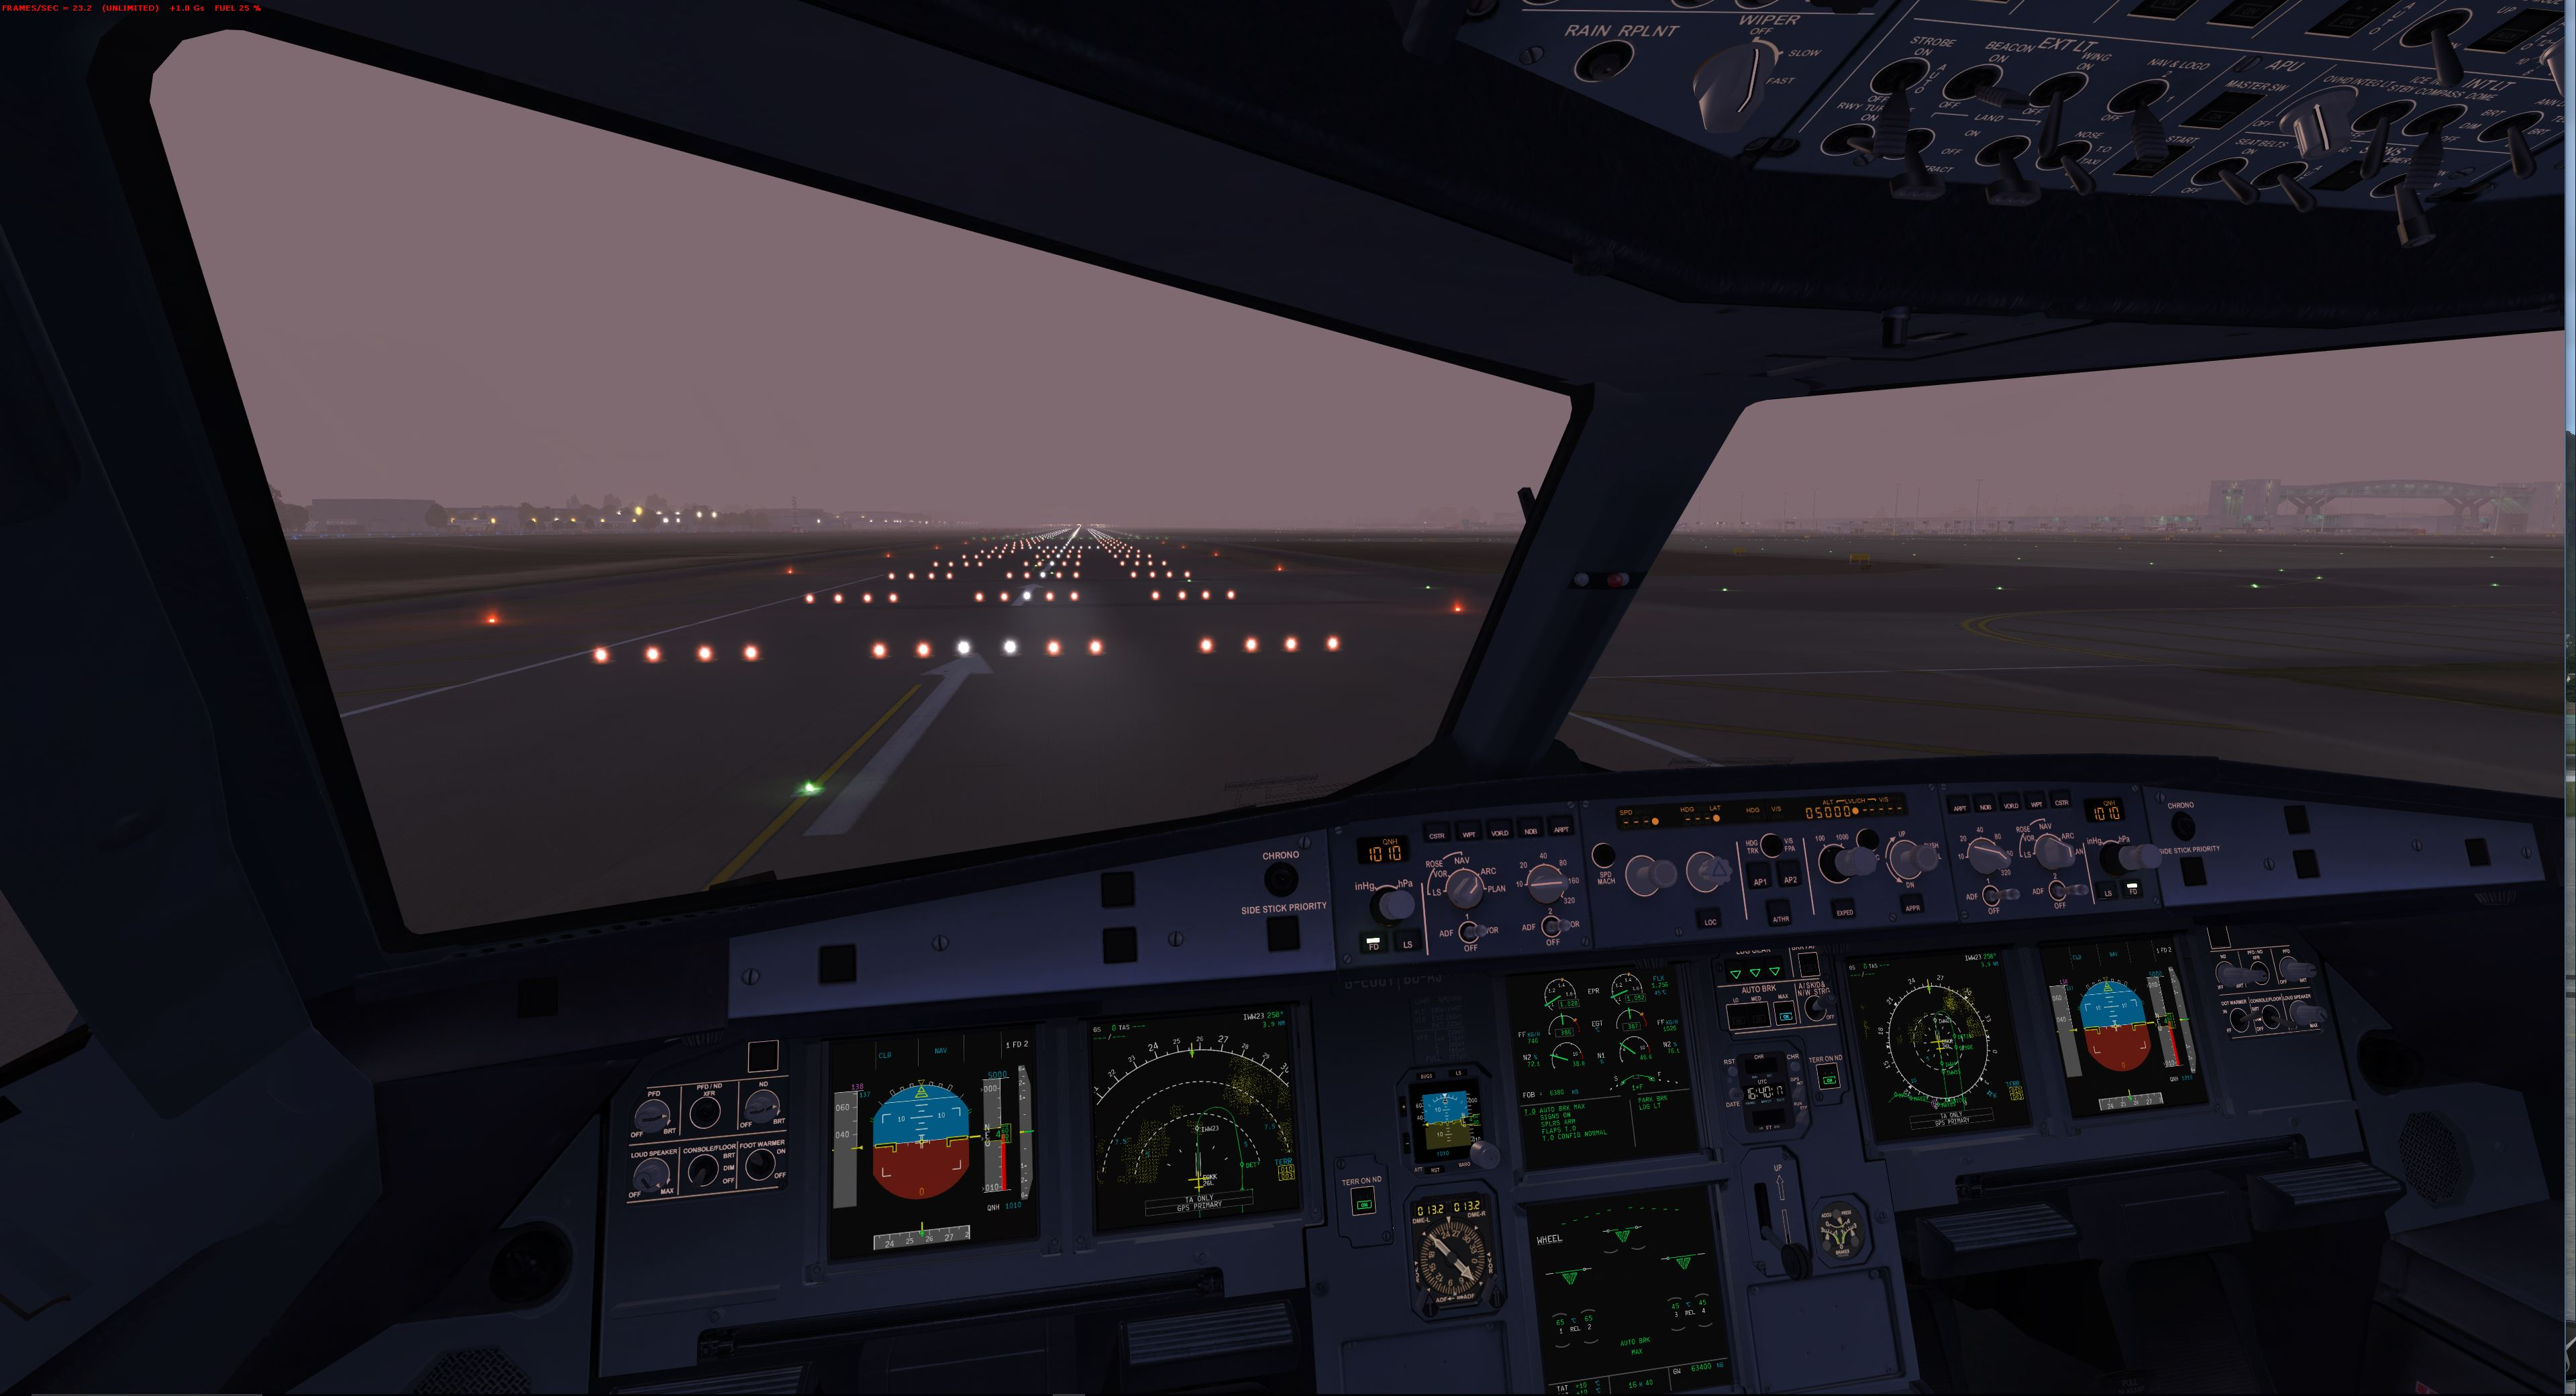 Share your addons and setup - Archive - Flight Sim Labs Forums